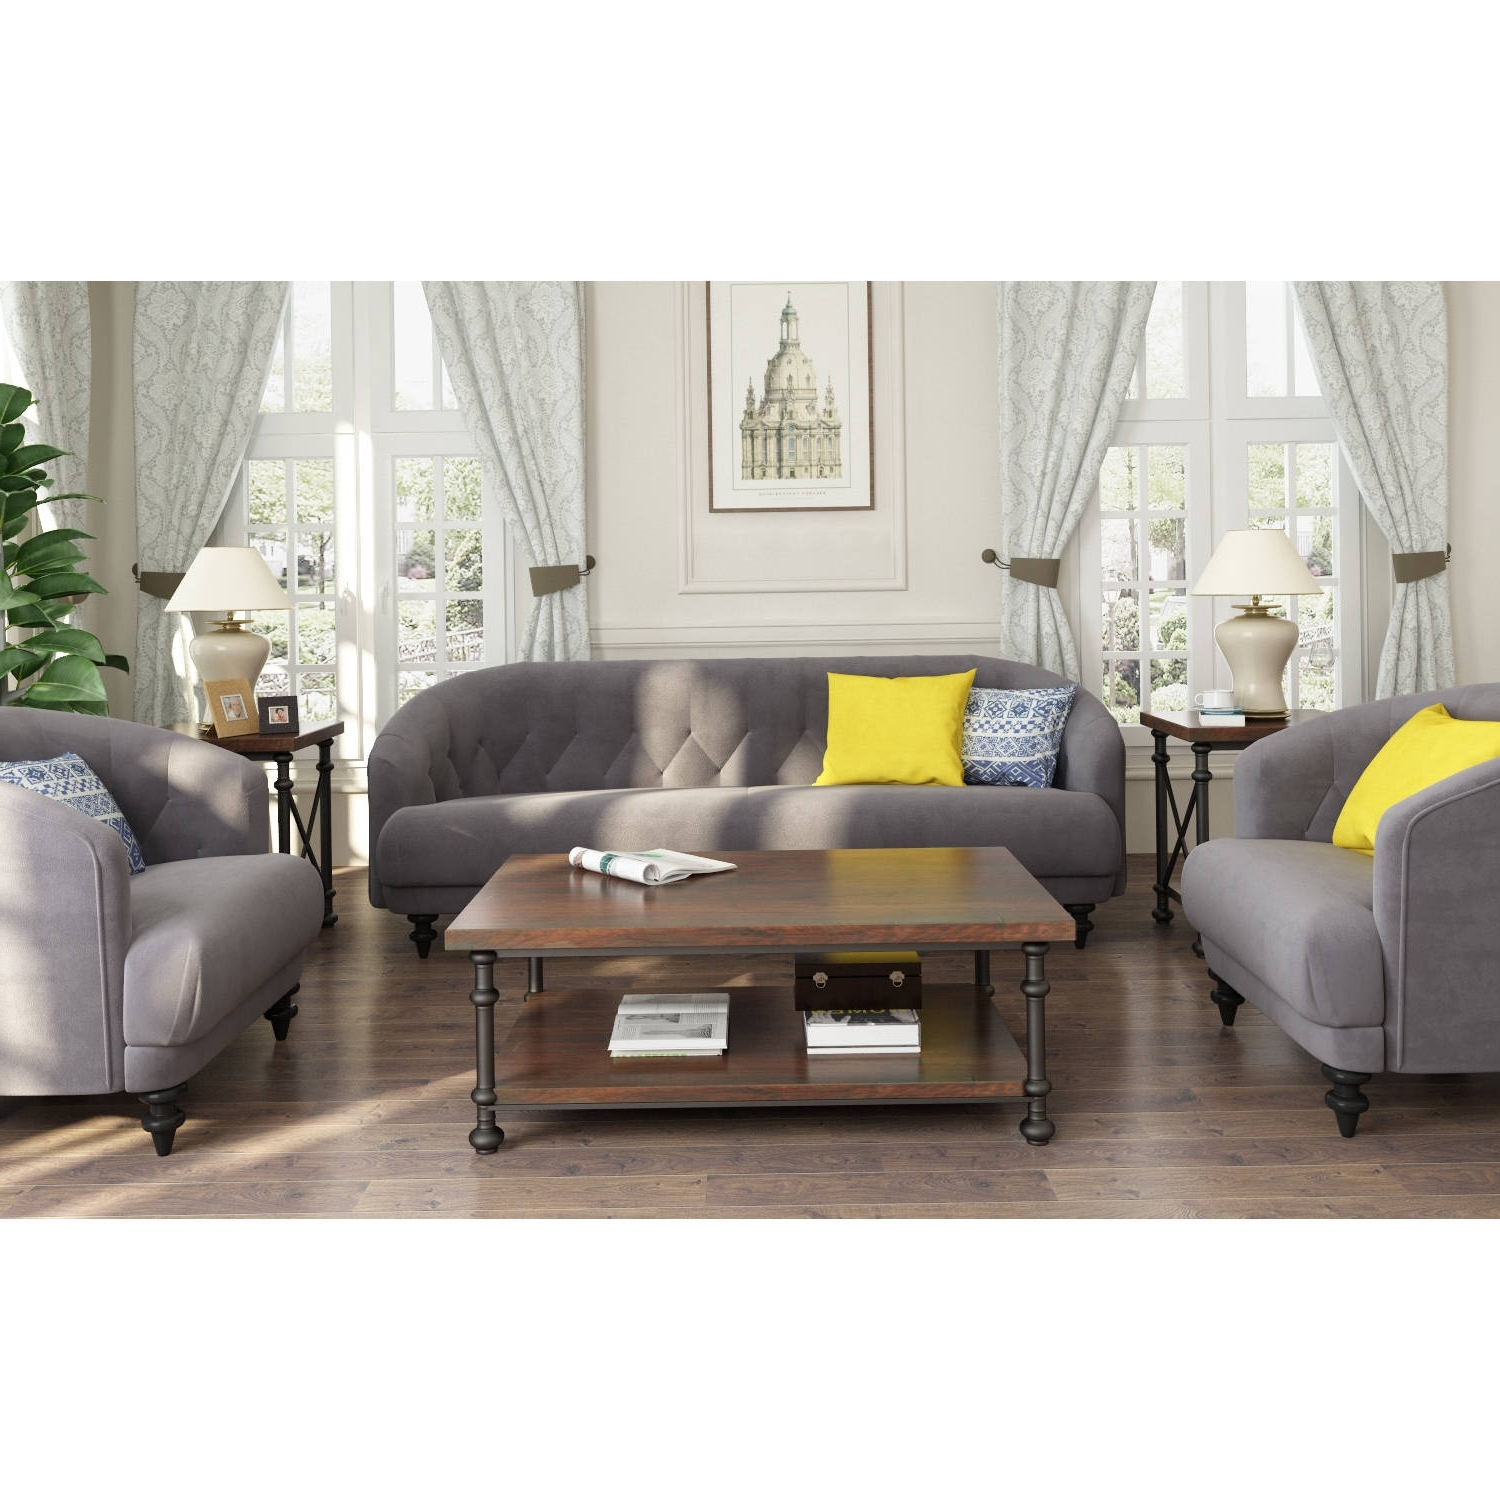 Furniture : Green Tufted Chaise Lounge Furniture Making Ottawa With Most Current Kitchener Sectional Sofas (View 4 of 15)